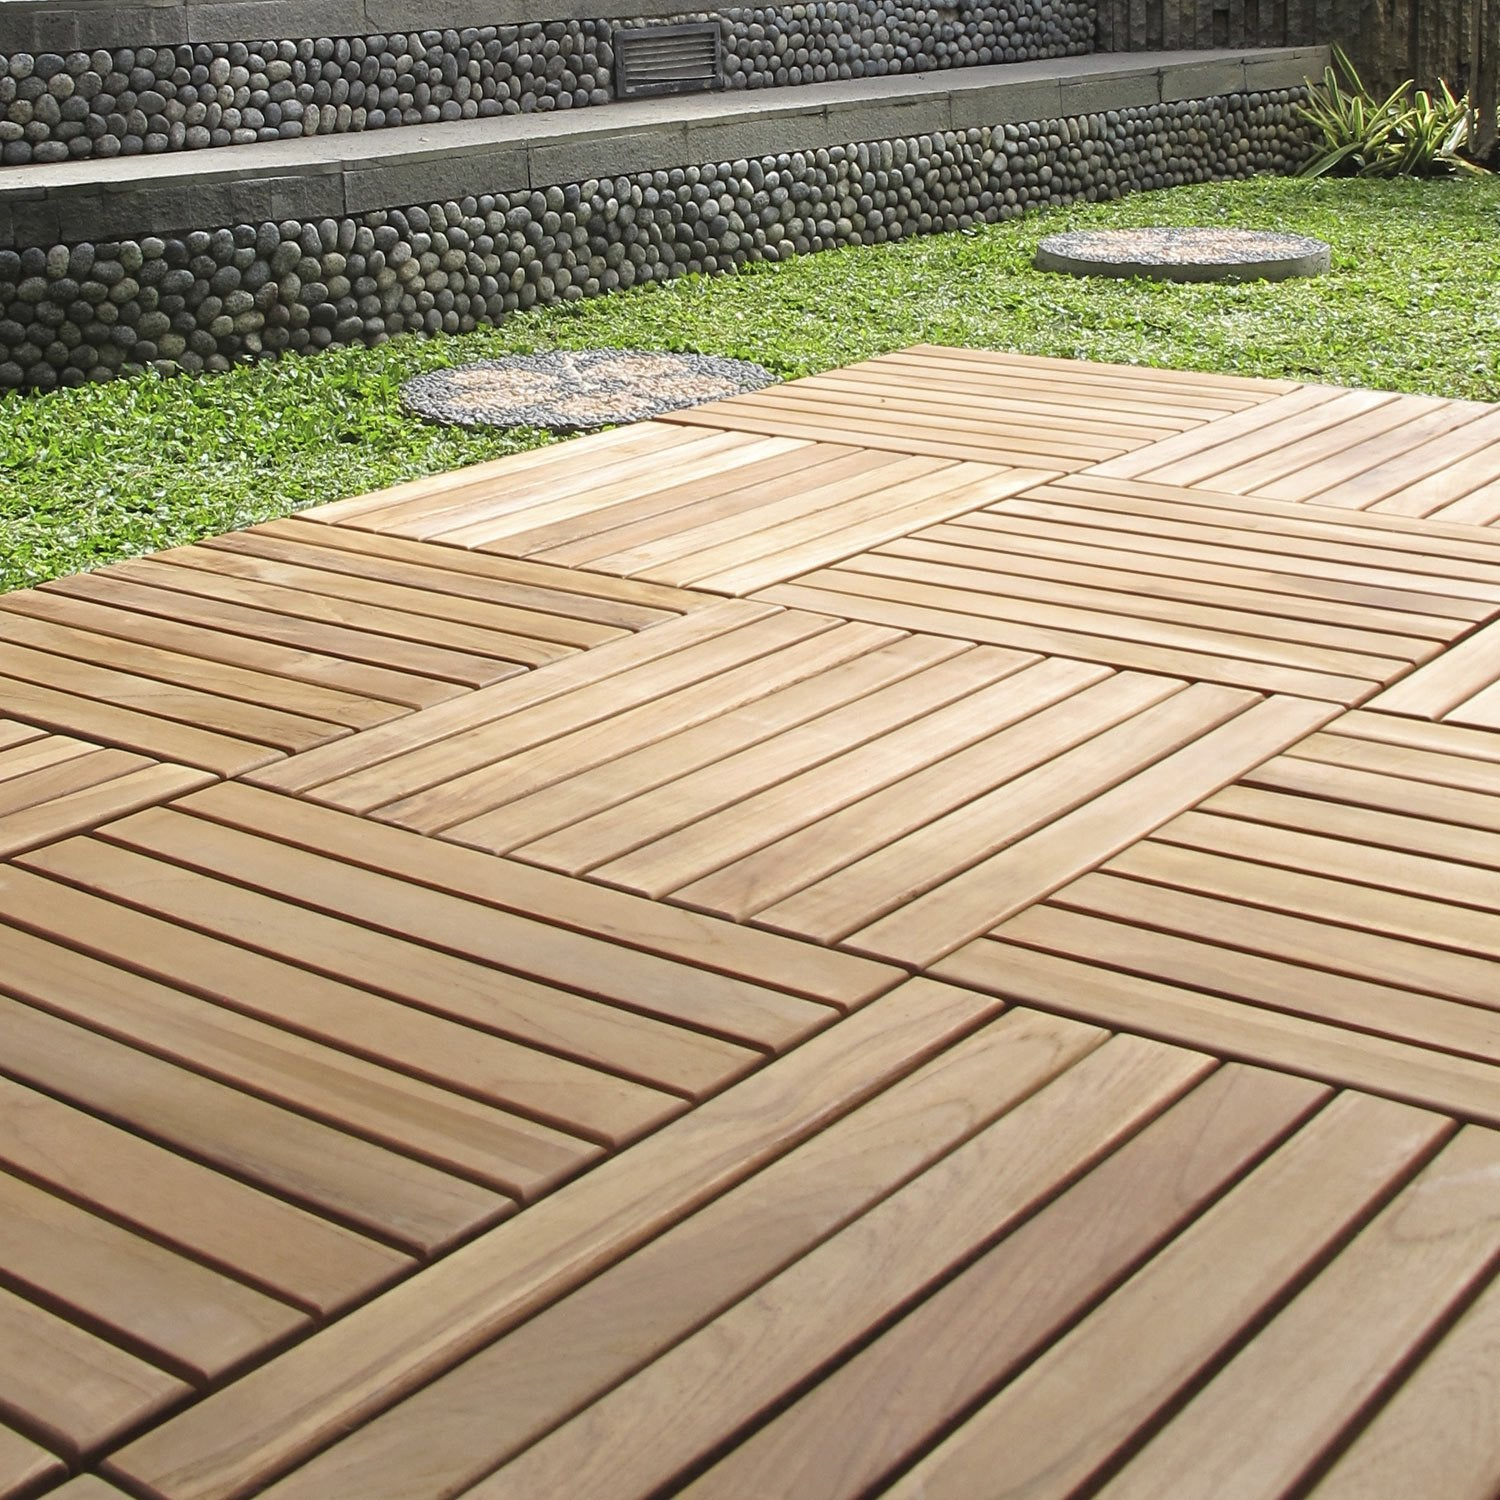 Dalle Clipsable Bois Marron Naturel Miel X Cm X Mm Leroy Merlin. Terrasse  Composite Clipsable.